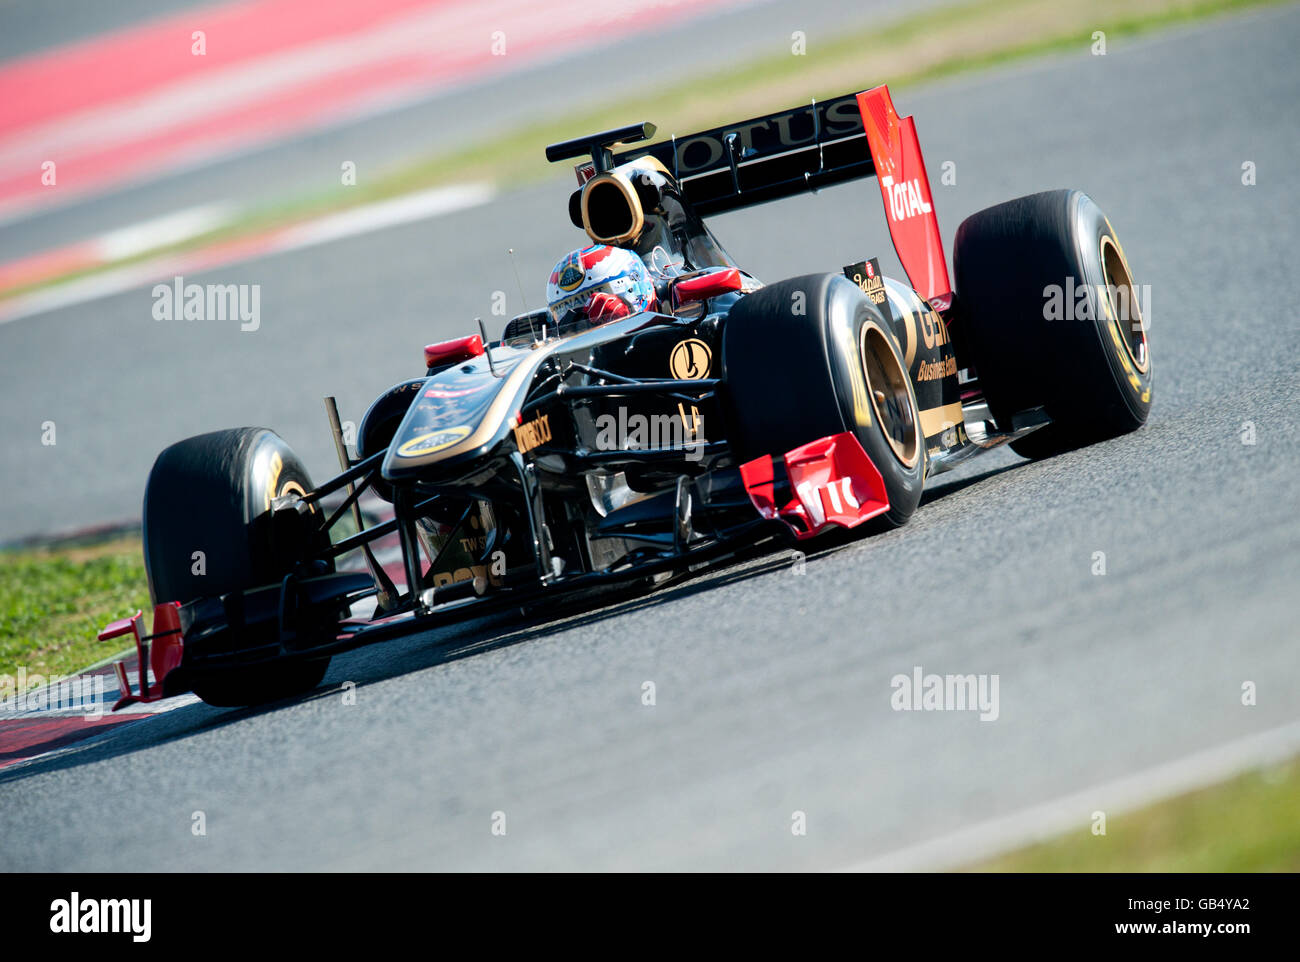 Russian driver Vitaly Petrov driving a Lotus Renault GB Team-Renault R31 car, motor sports, Formula 1 testing at - Stock Image